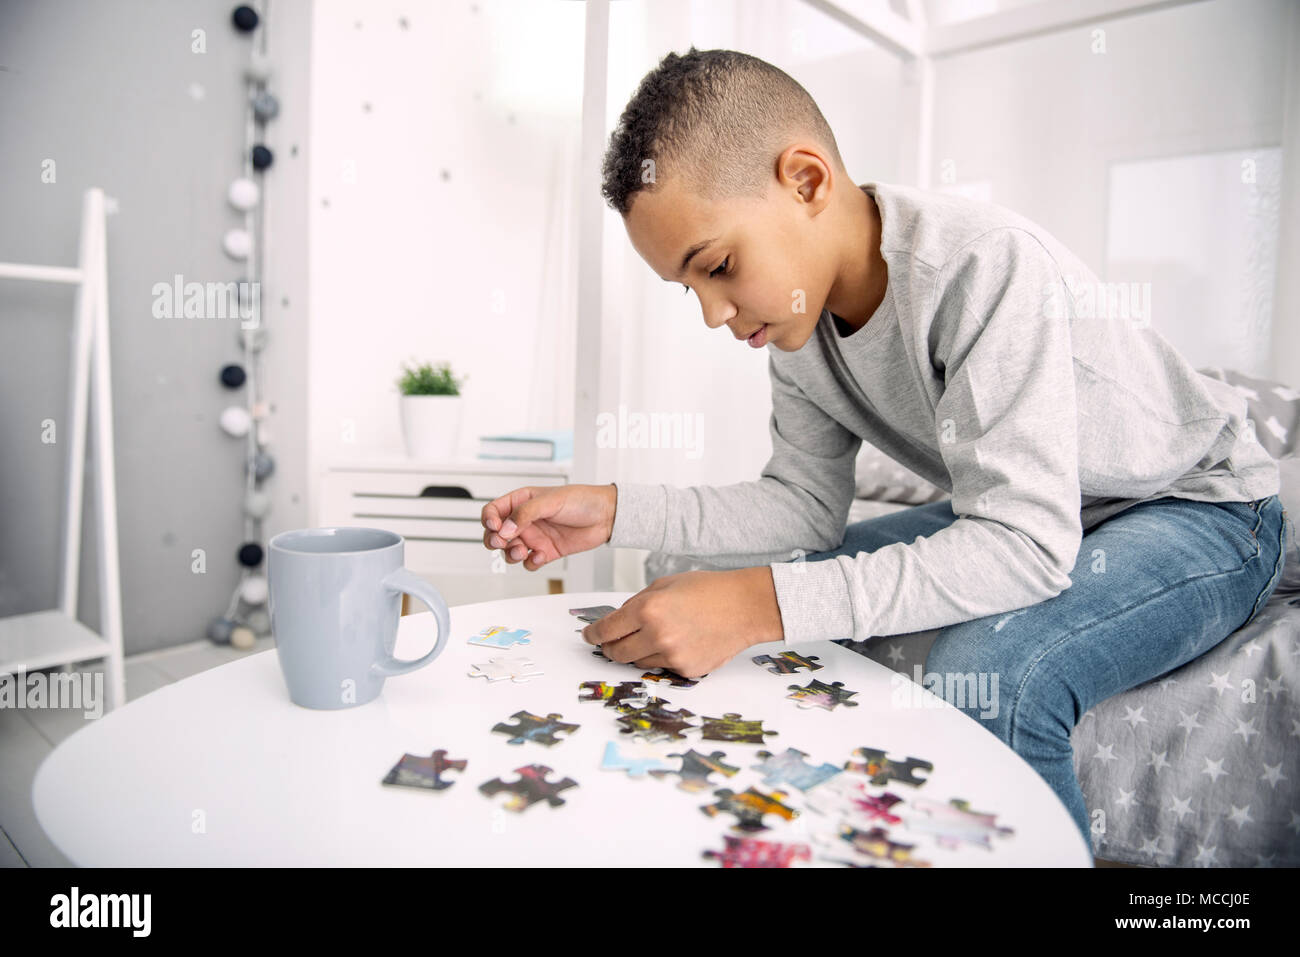 Serious nice boy assembling puzzle - Stock Image